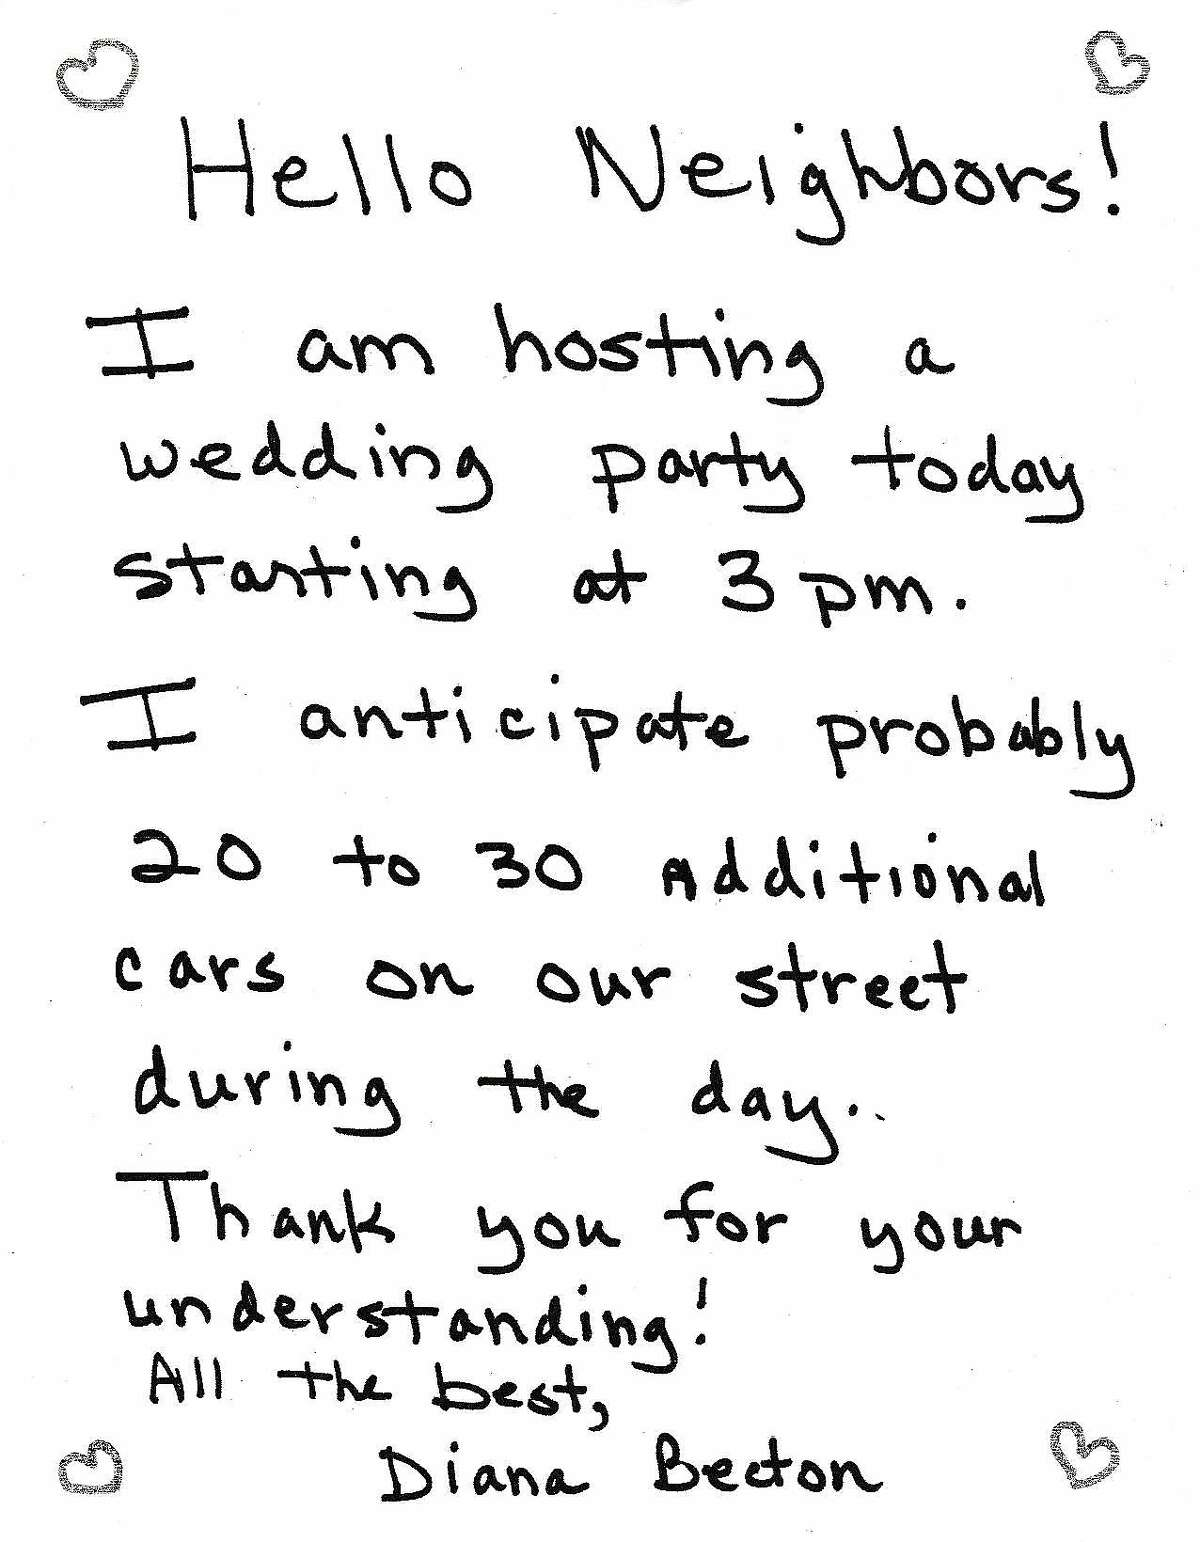 """A note left on Contra Costa County District Attorney Diana Becton's neighbors' doors Aug. 1 informing them she planned to host a wedding party with """"probably 20 to 30 additional cars"""" parked on their street."""